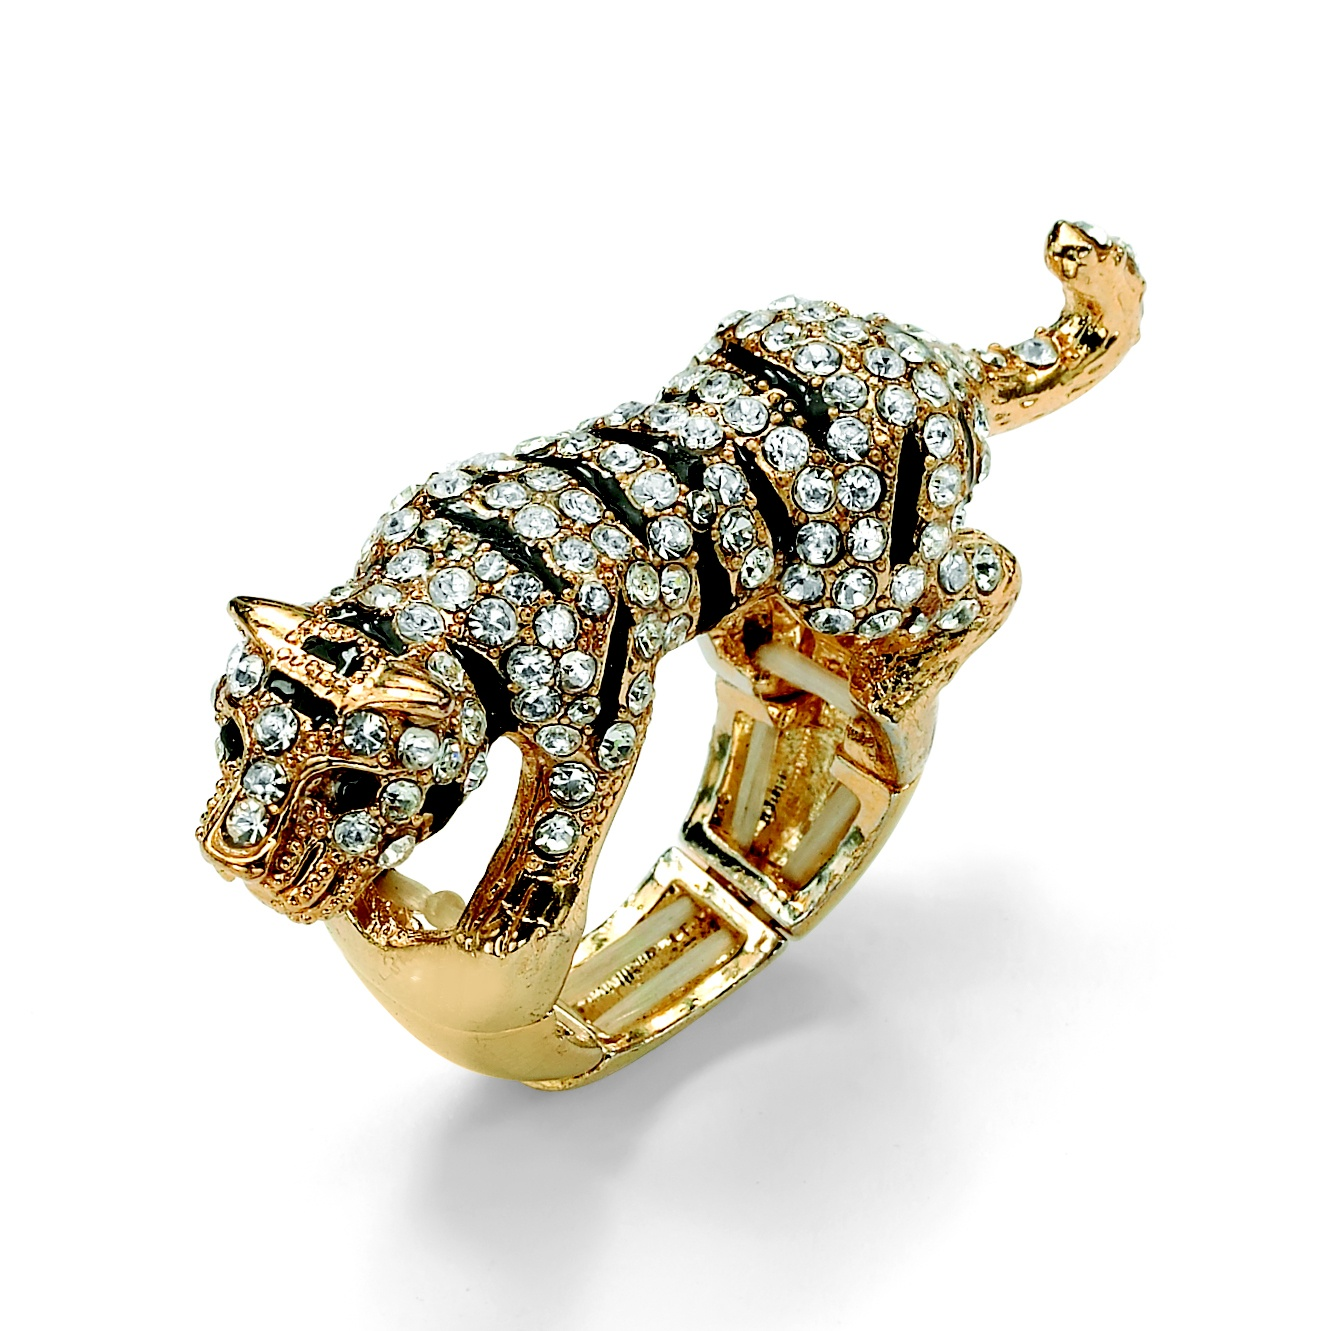 PalmBeach Jewelry Celebrating over 50 years, we have a large selection of jewelry and fragrances. Every order comes with our Day Guarantee! #pbjstyle tusagrano.ml